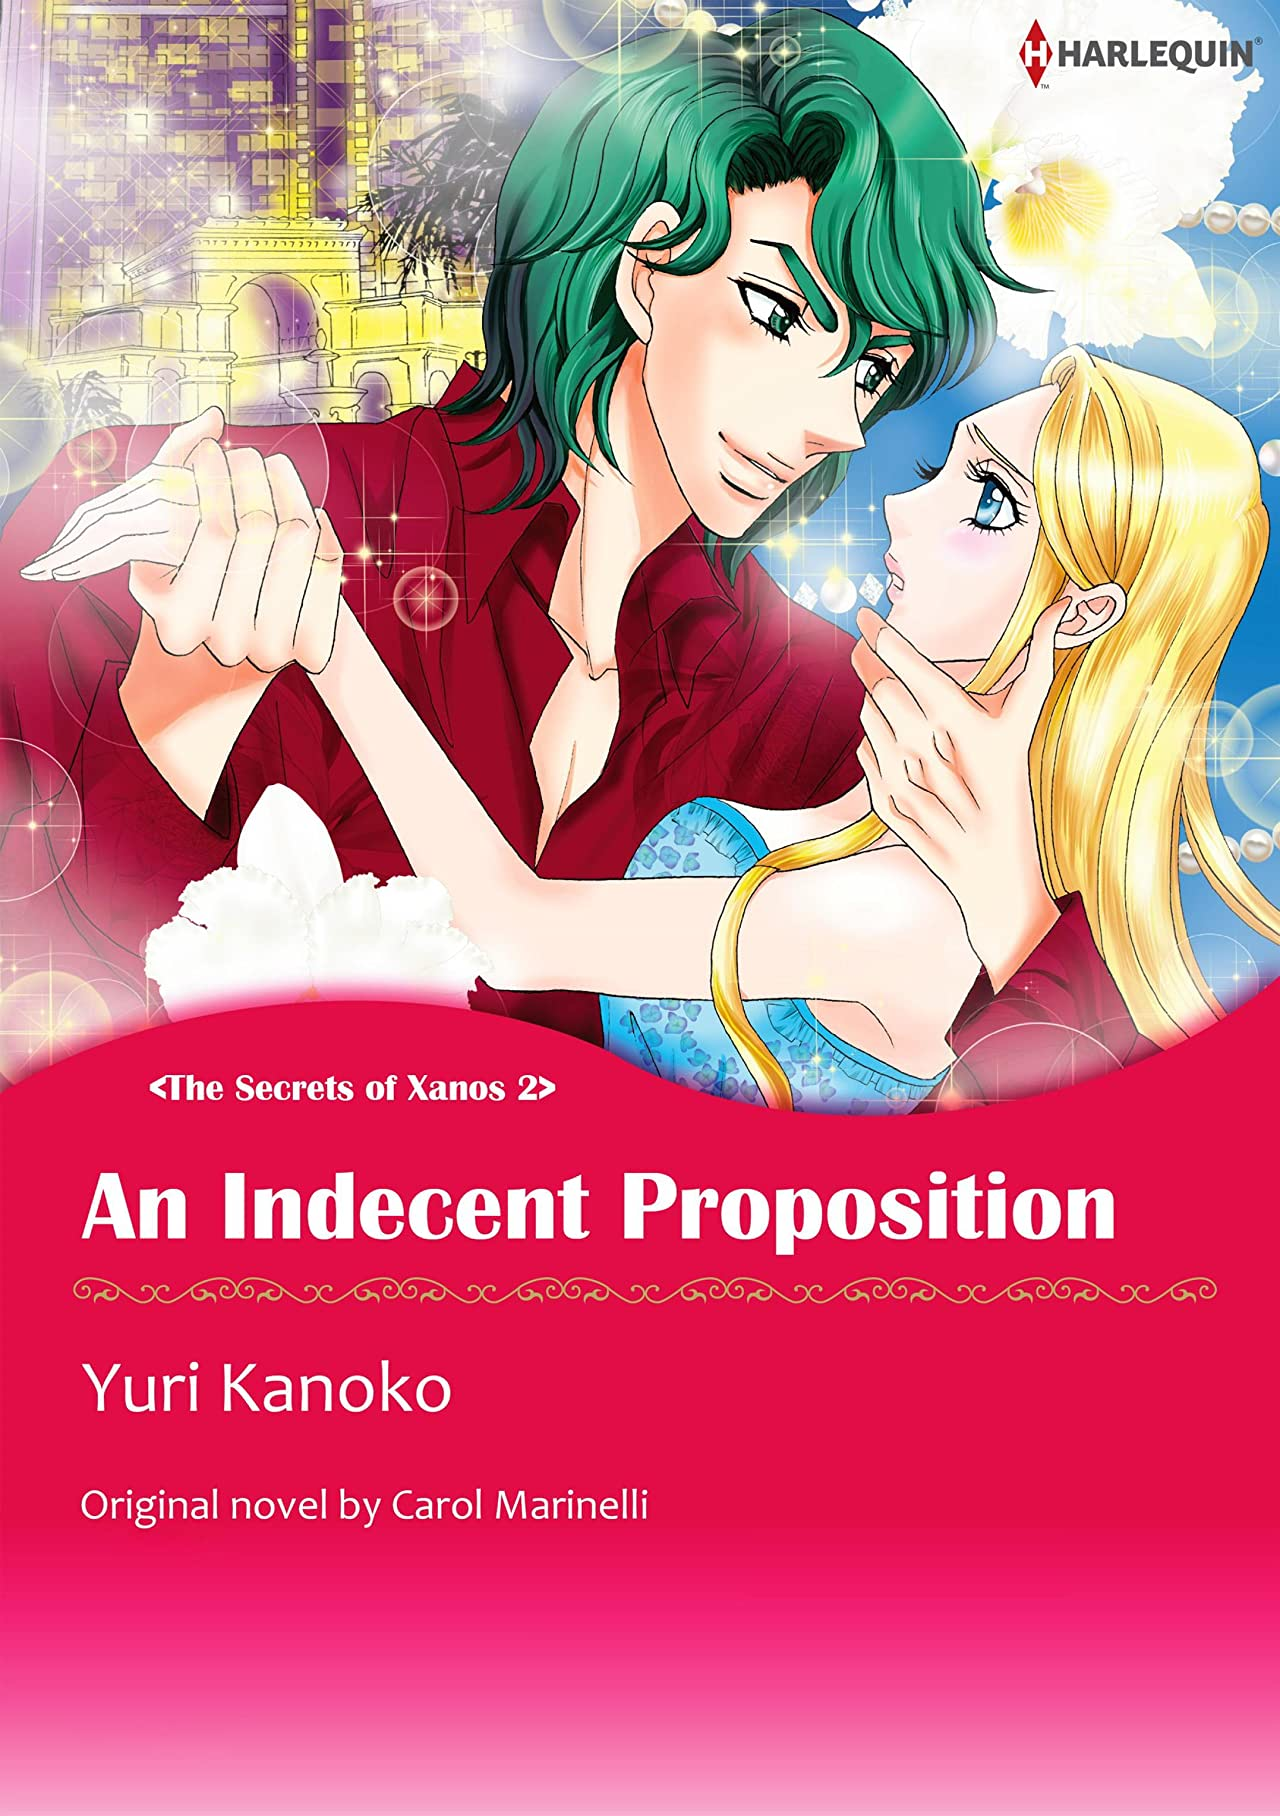 An Indecent Proposition Vol. 2: The Secrets of Xanos 2